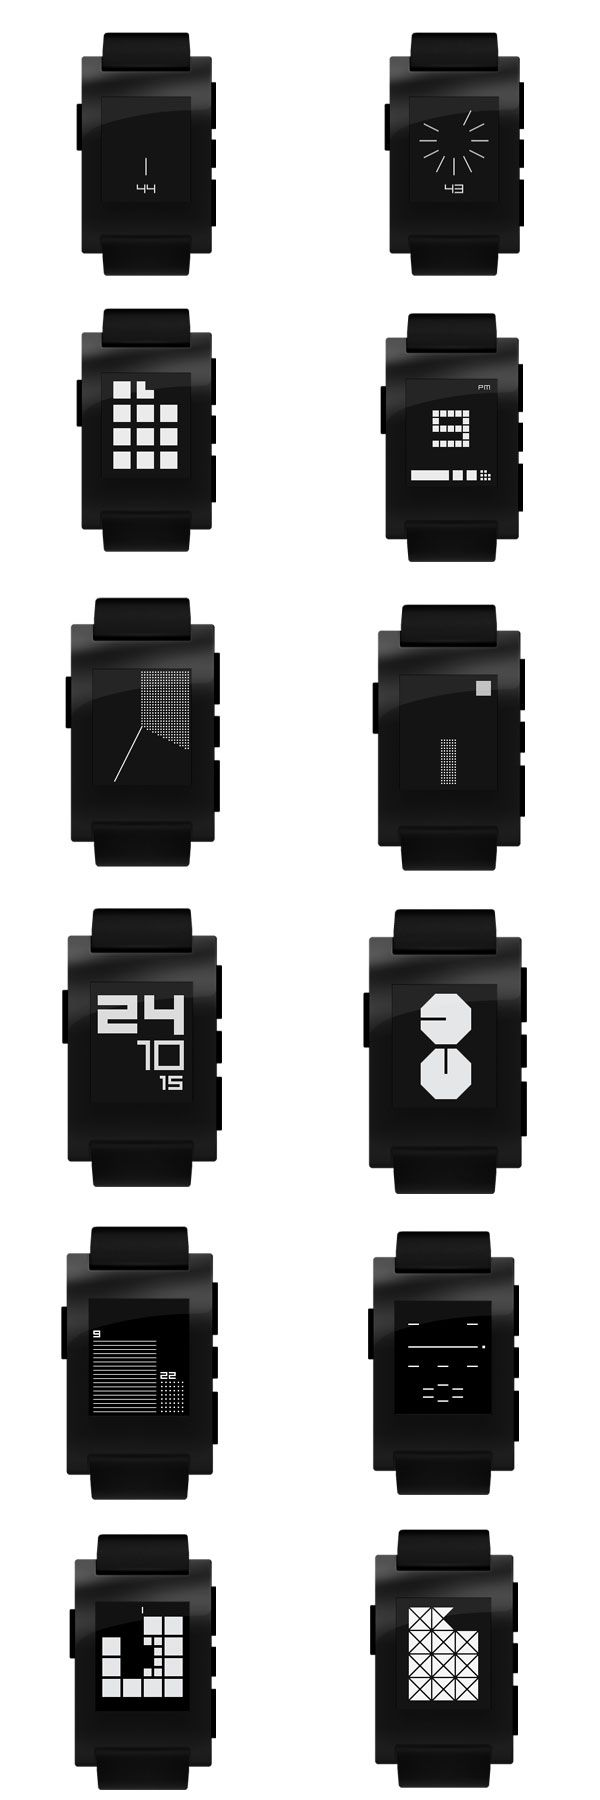 """ttmm - Watch Collection by Albert Salamon  - The """"ttmm"""" collection of wristwatch apps was designed for specifically for smartwatches with 144×168 pixel screens such as Pebble and Kreyos. 15 different face options give the wearer a multitude of stylized options, each with its own puzzling way of displaying the time. 